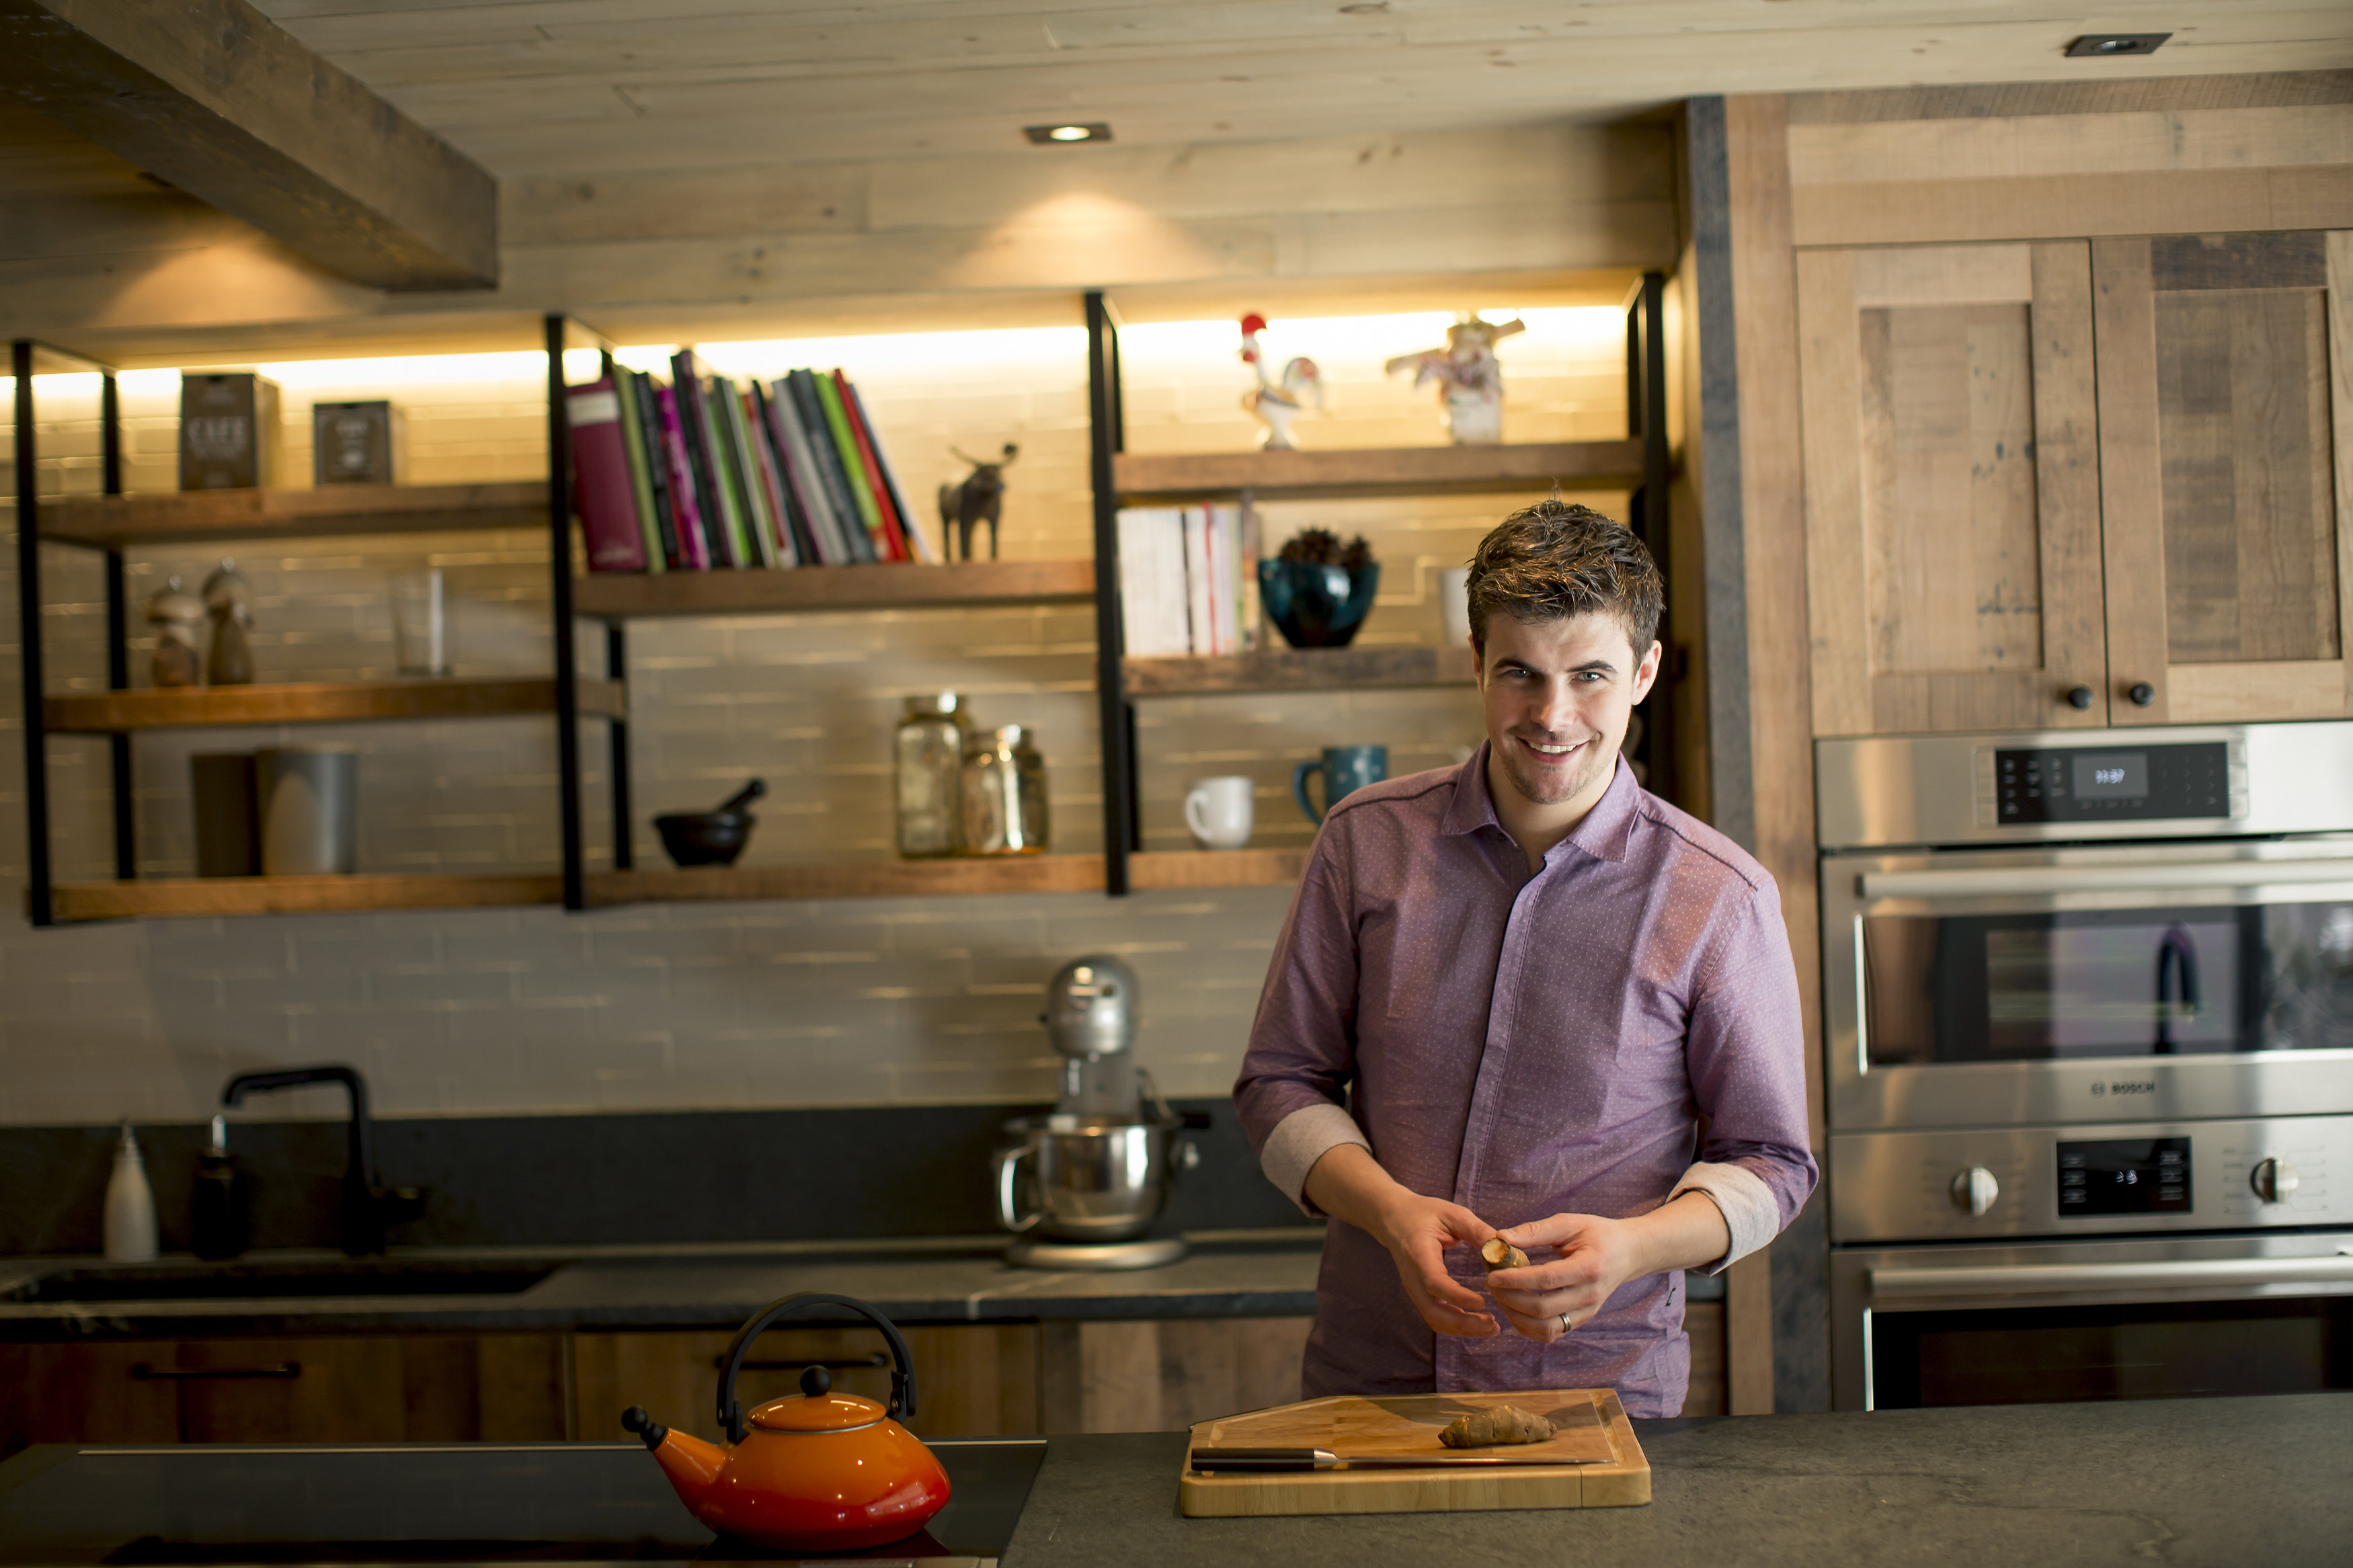 Chef-marchand-chez-boulay-home-kitchen.jpg